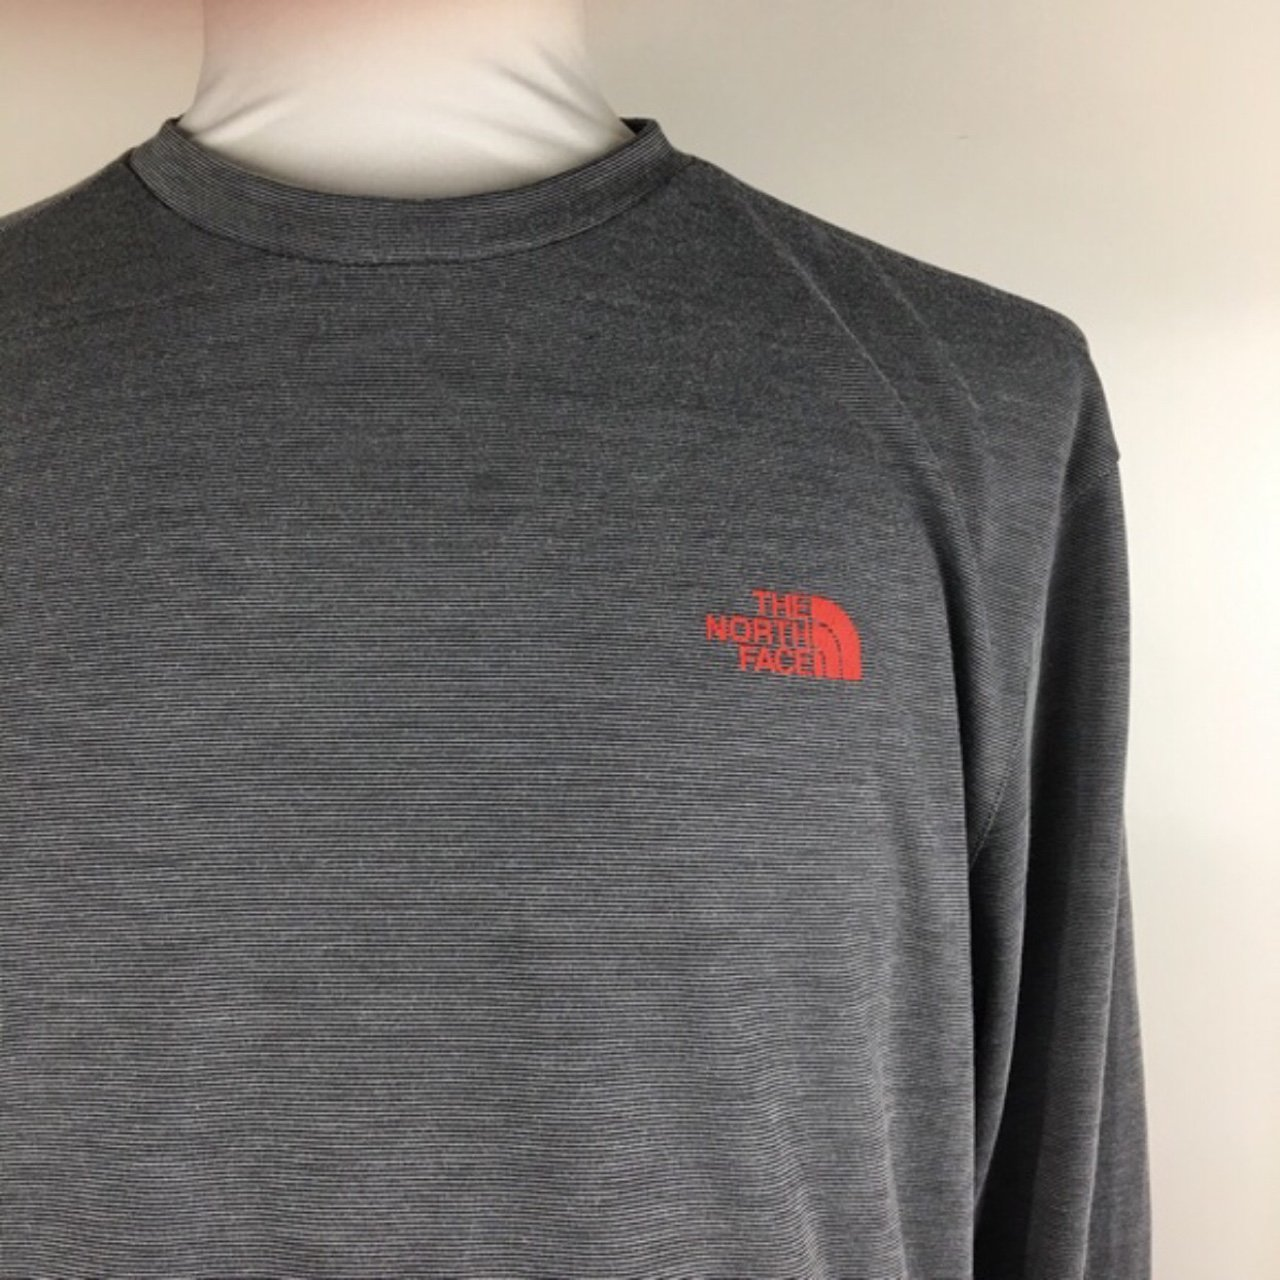 The North Face Vaporwick long sleeve shirt Mens Large in new - Depop 55518e11c